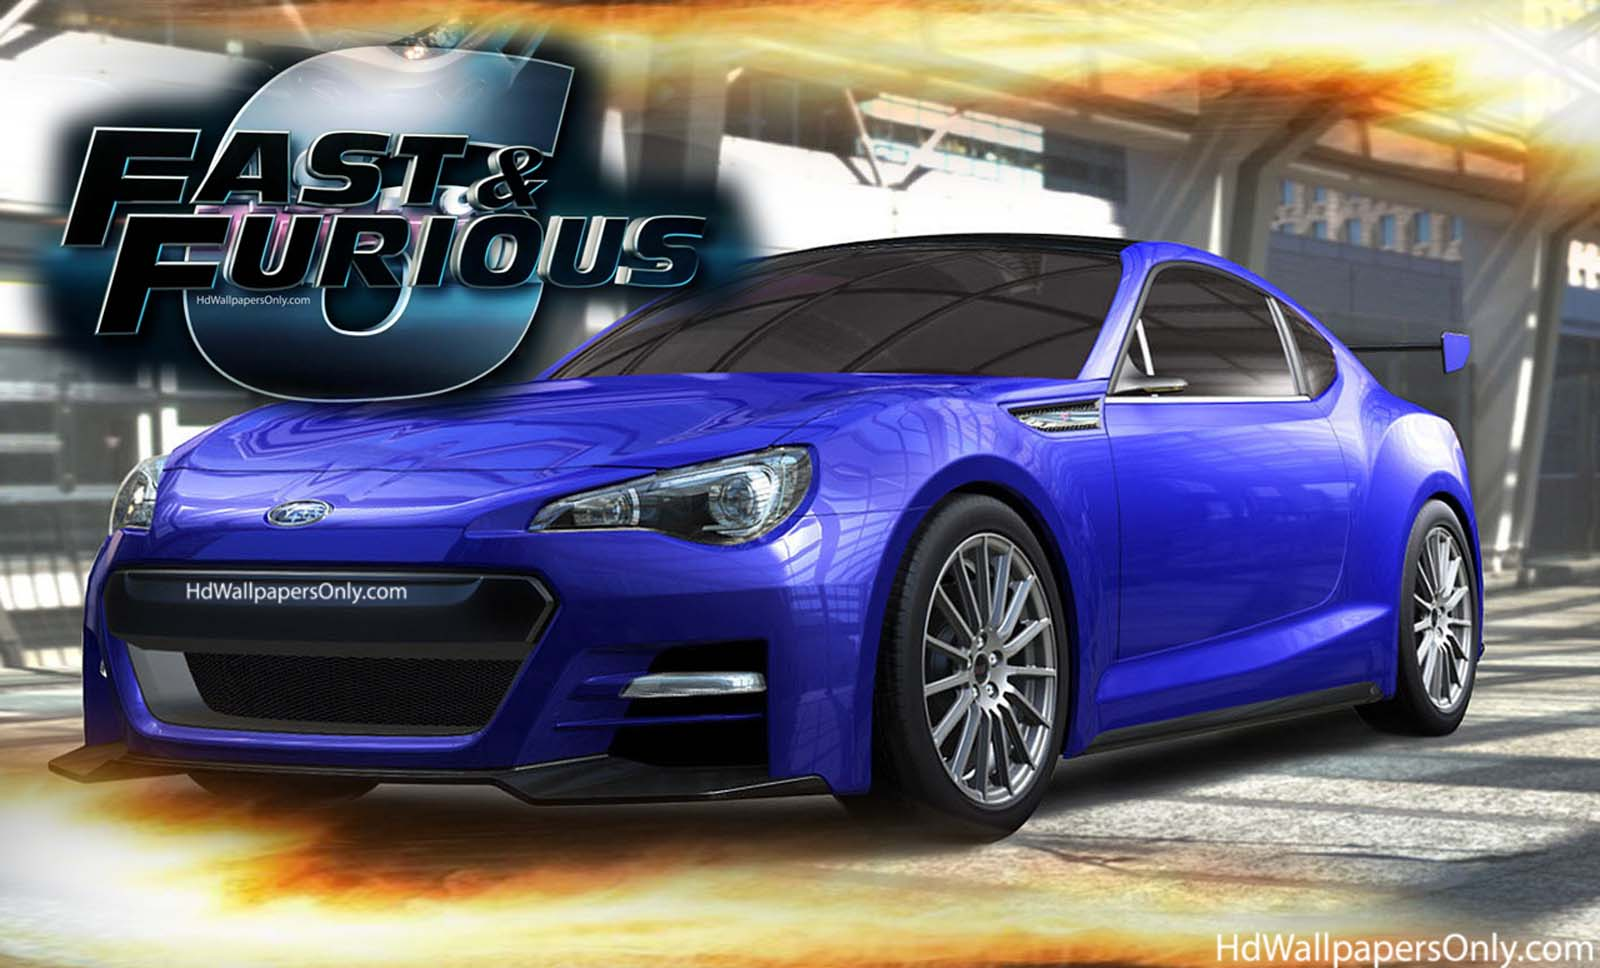 Fast And Furious Cars Wallpapers 1600x968